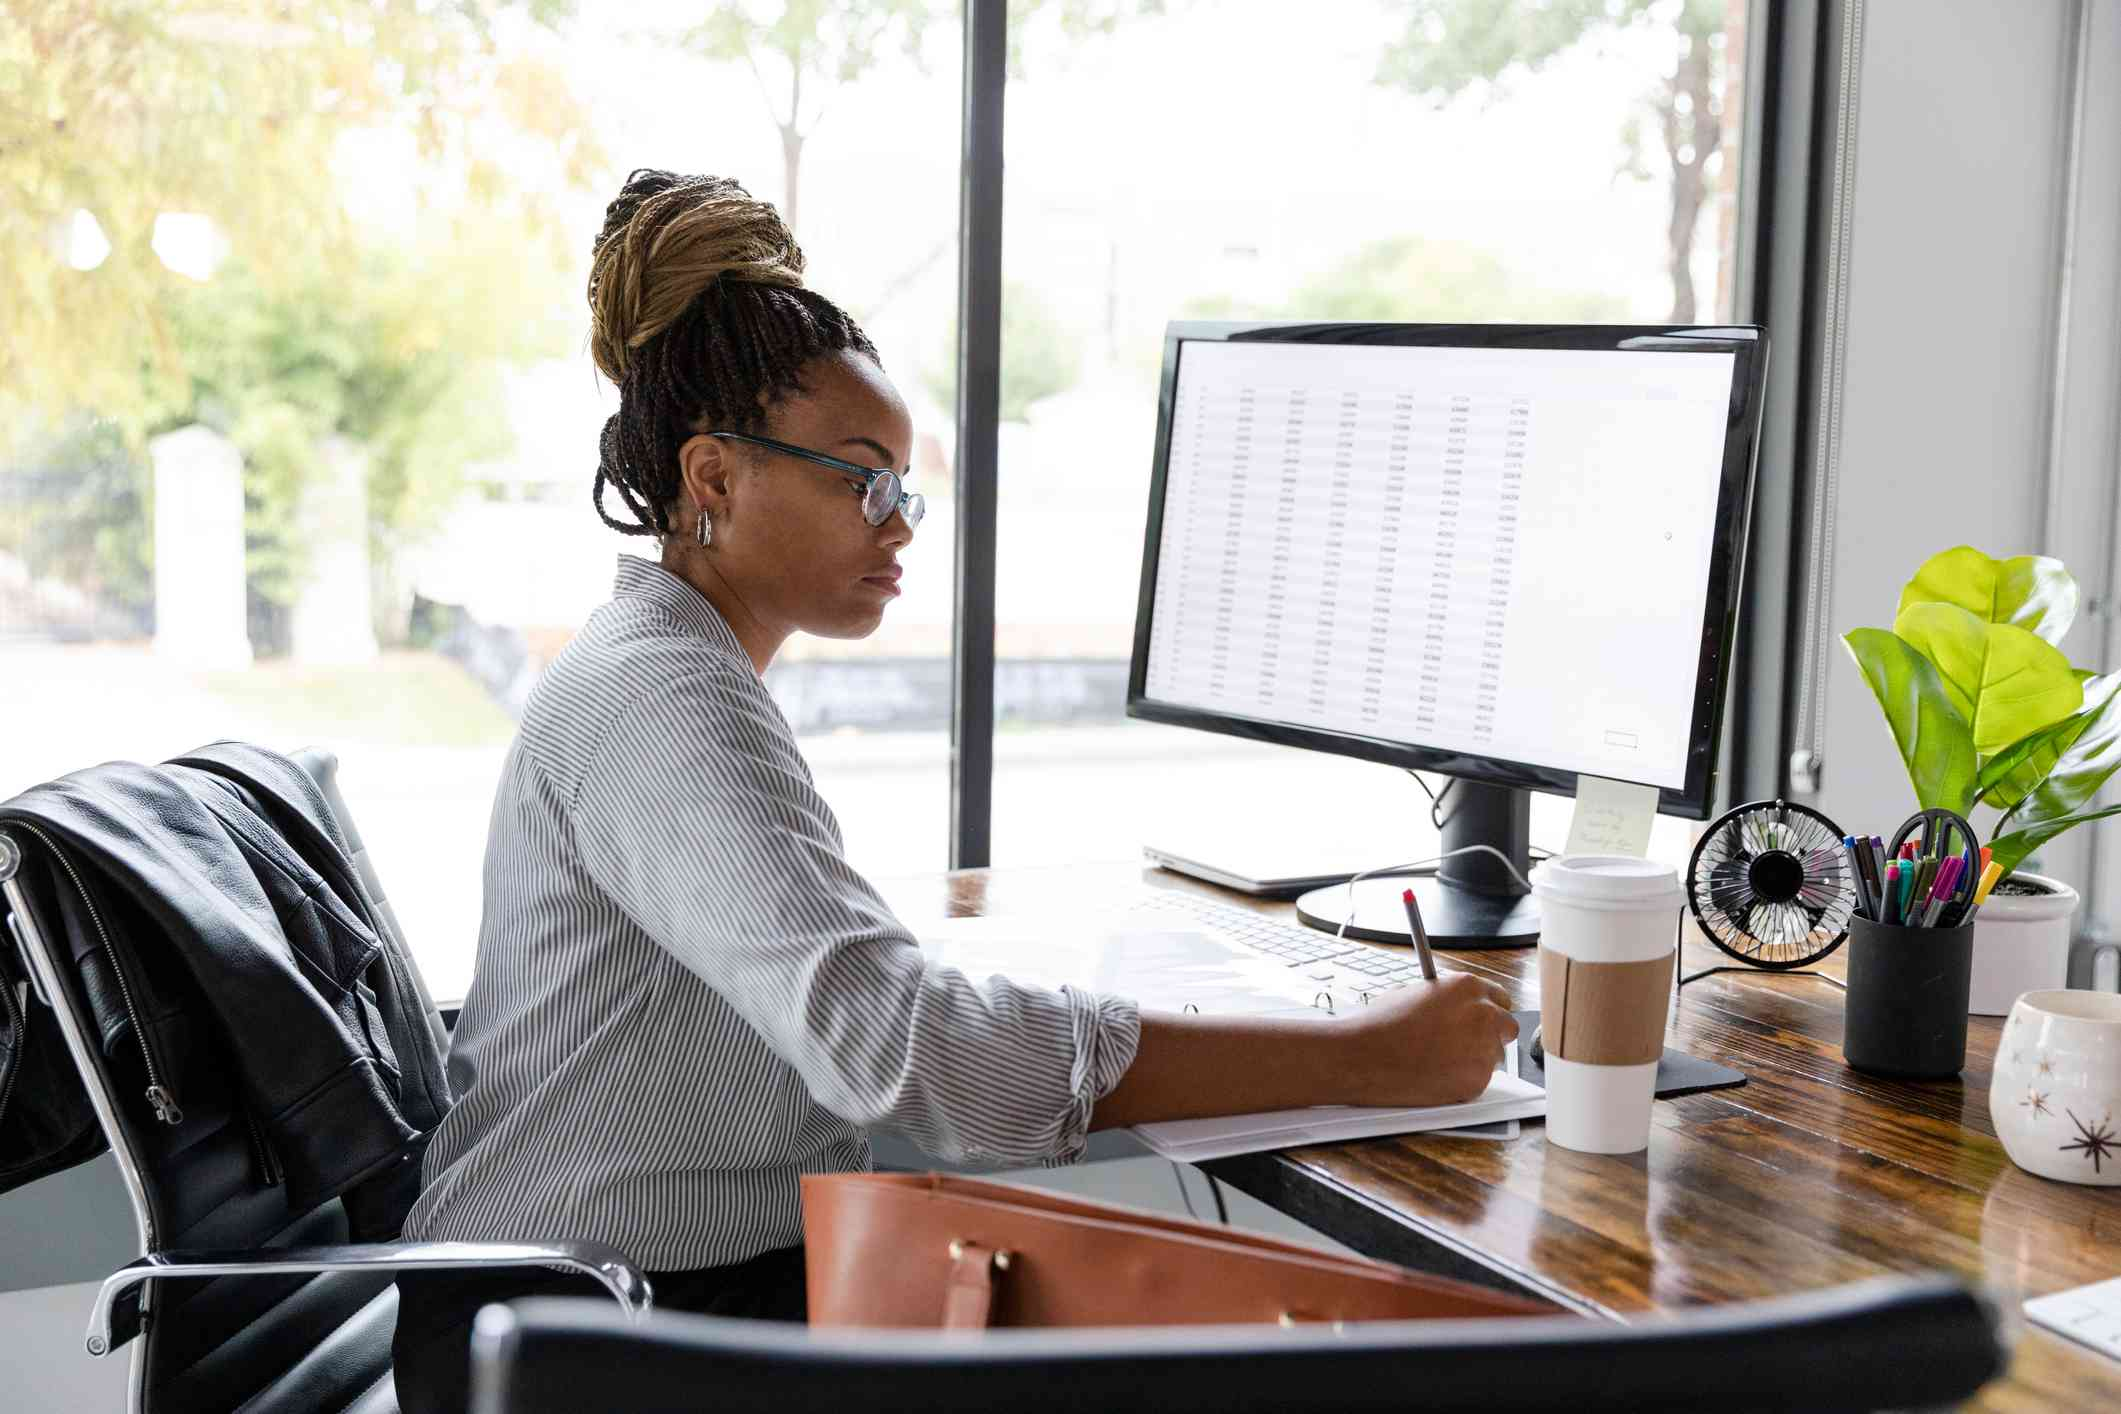 Busy businesswoman concentrates while working at her desk